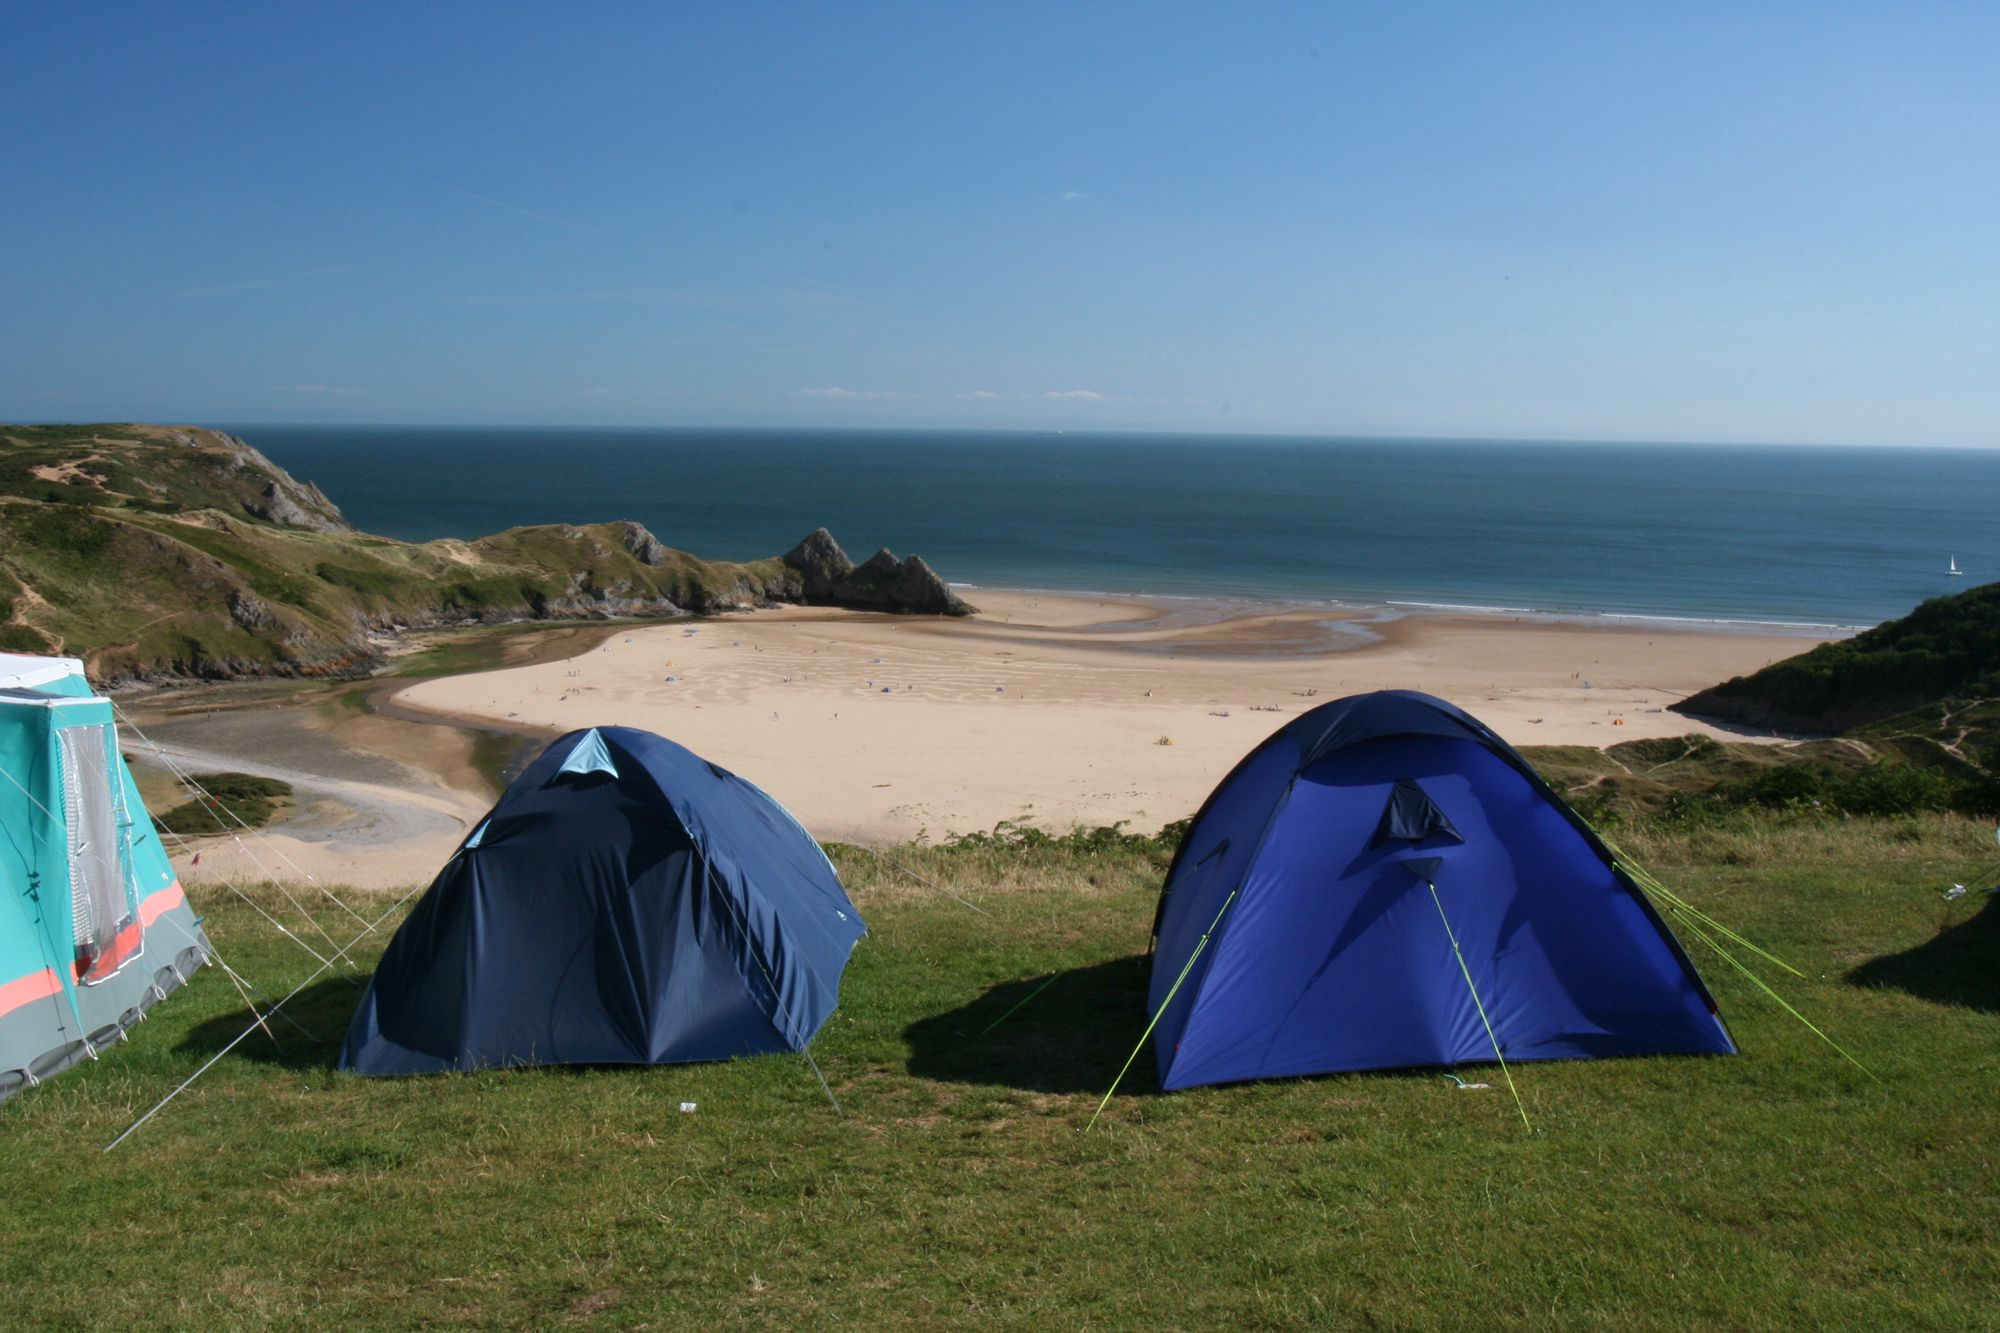 Seaside Campsites in the UK – Camp by the Beach